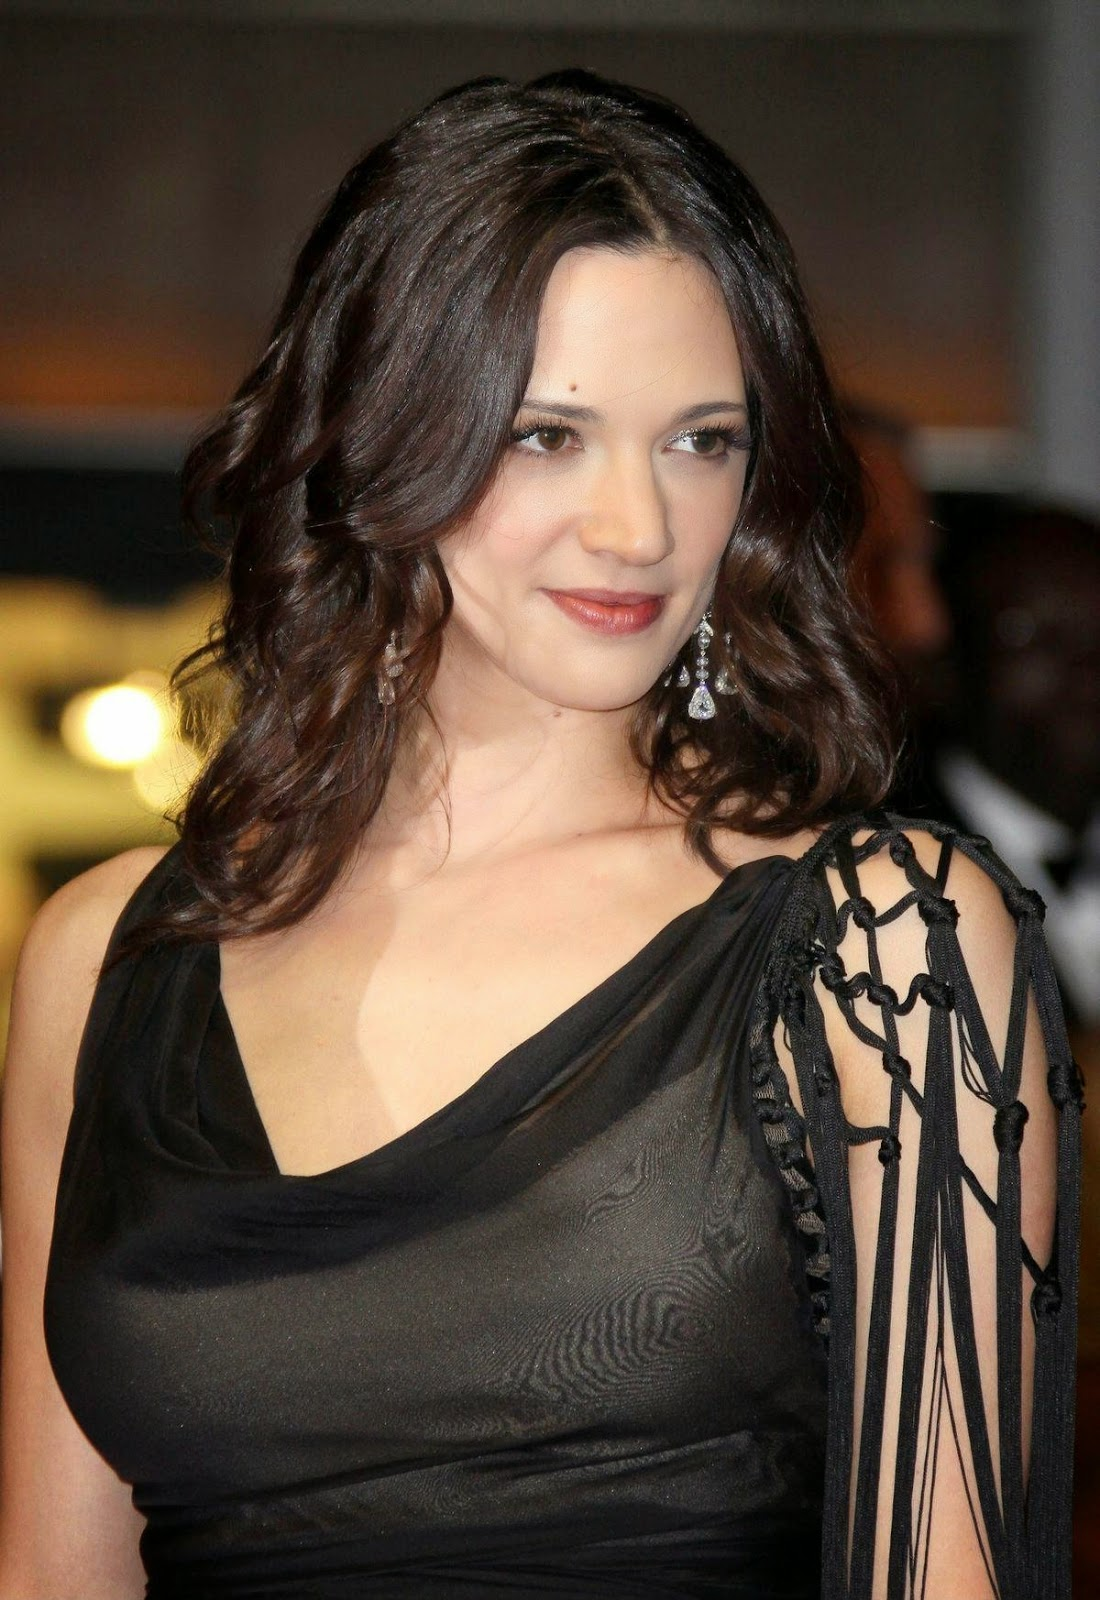 Star celebrity wallpapers asia argento hd wallpapers - Celeb wallpapers ...